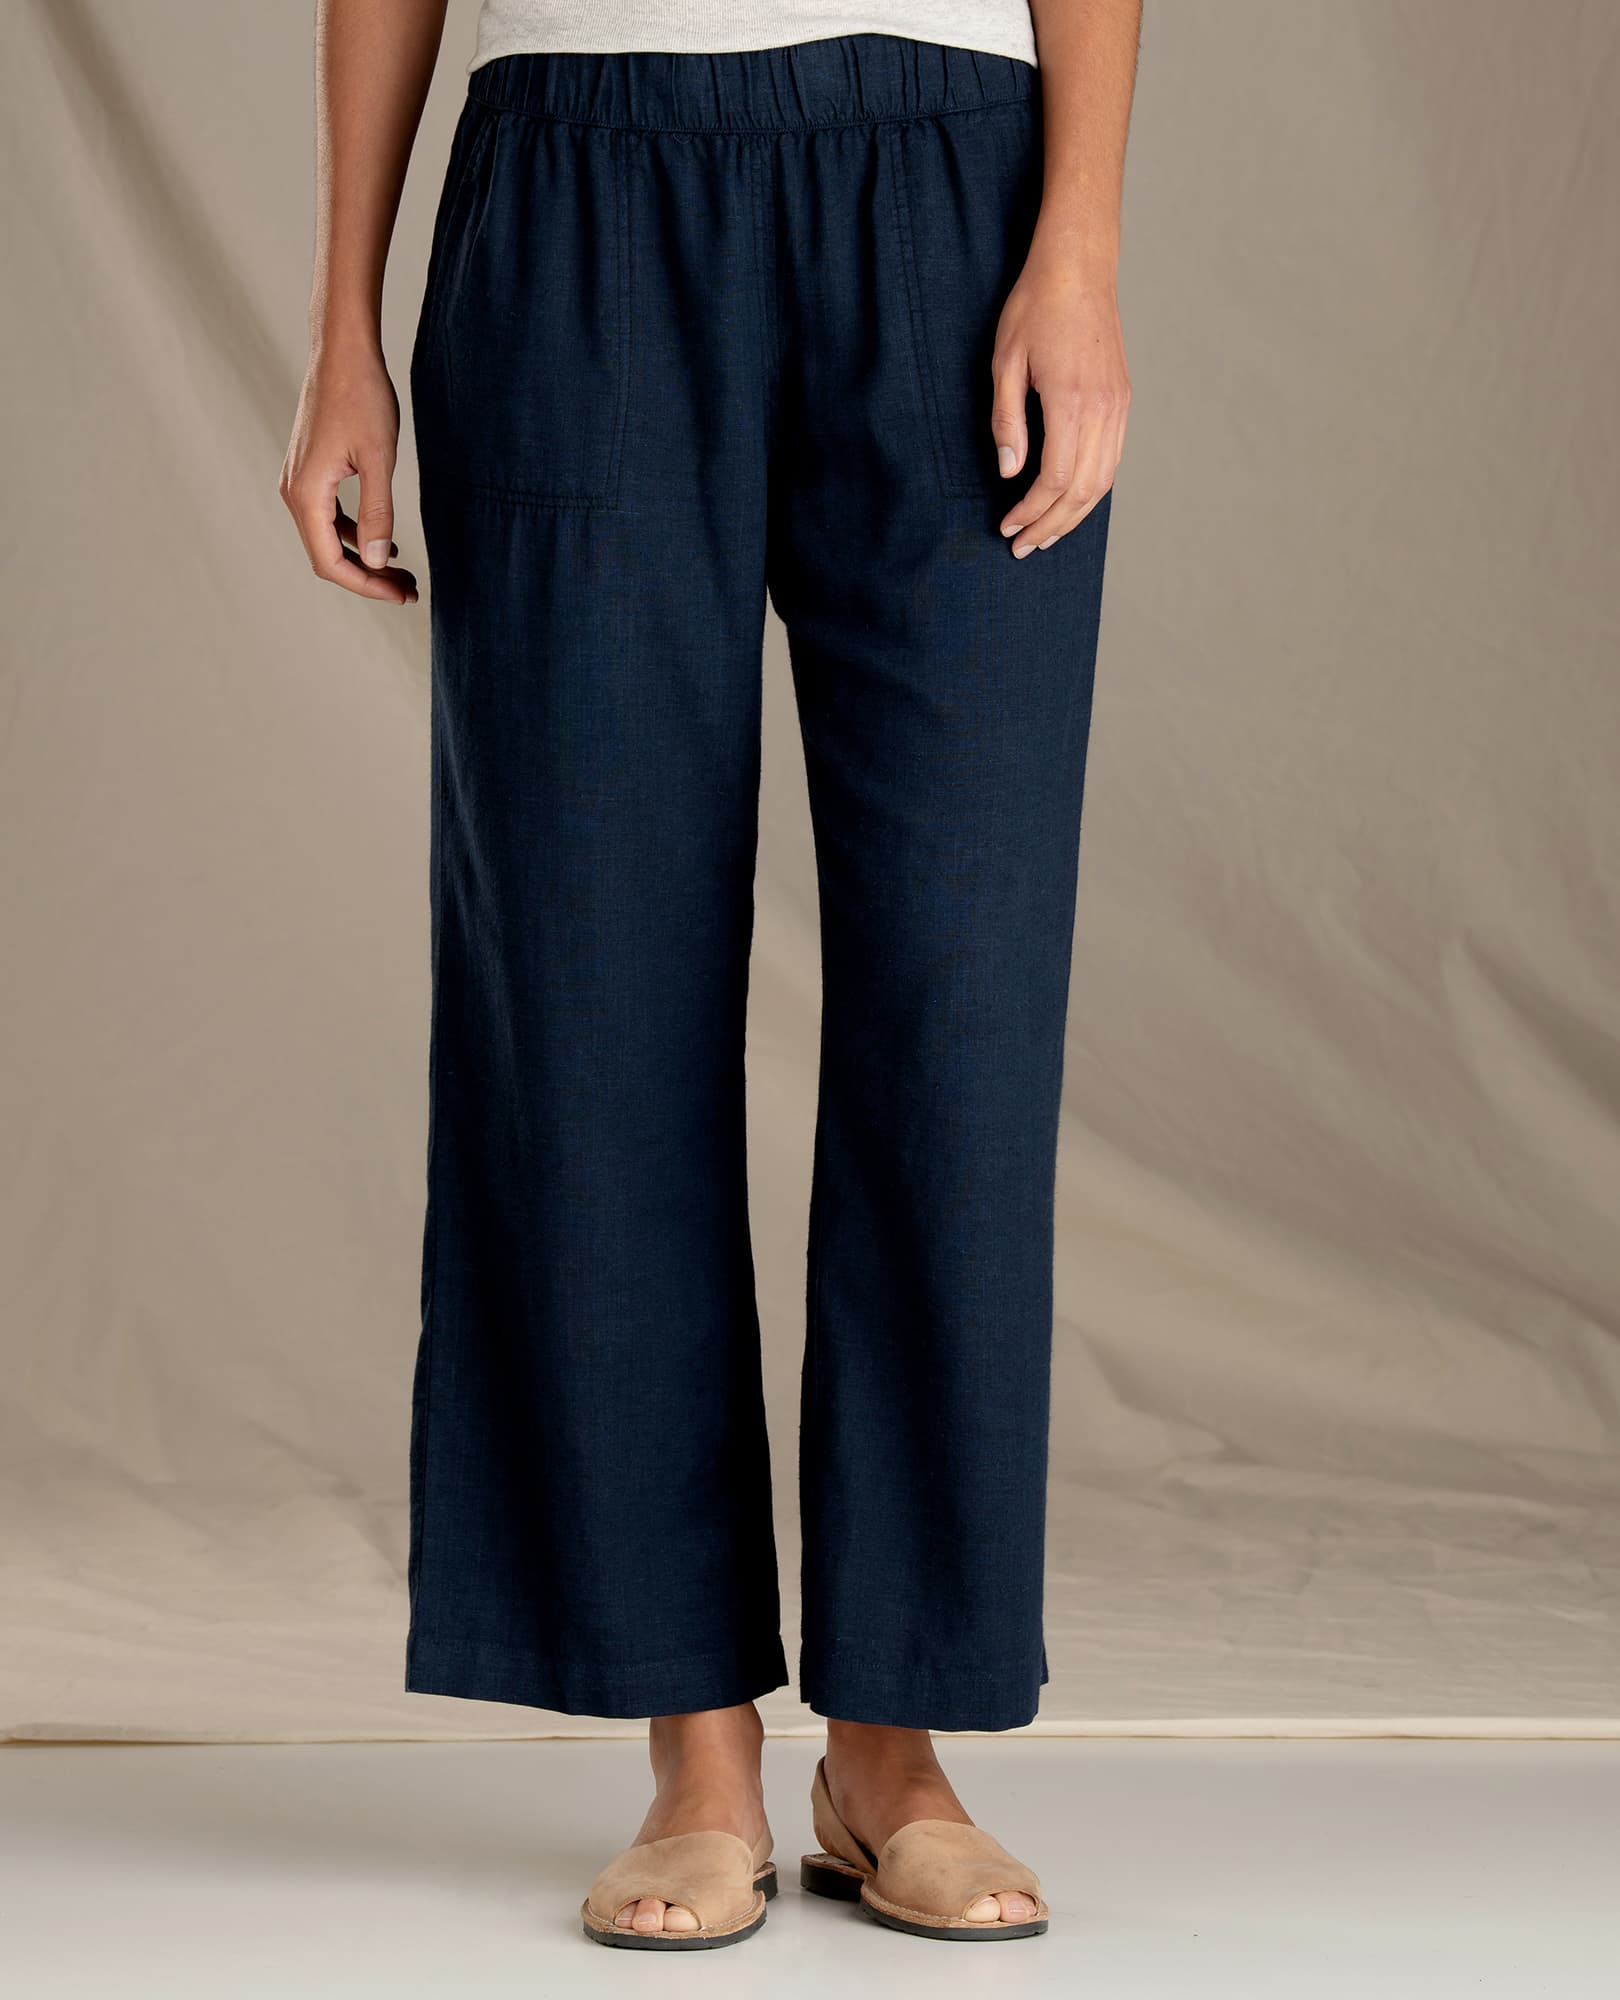 Toad & Co W's Tara Hemp Pant